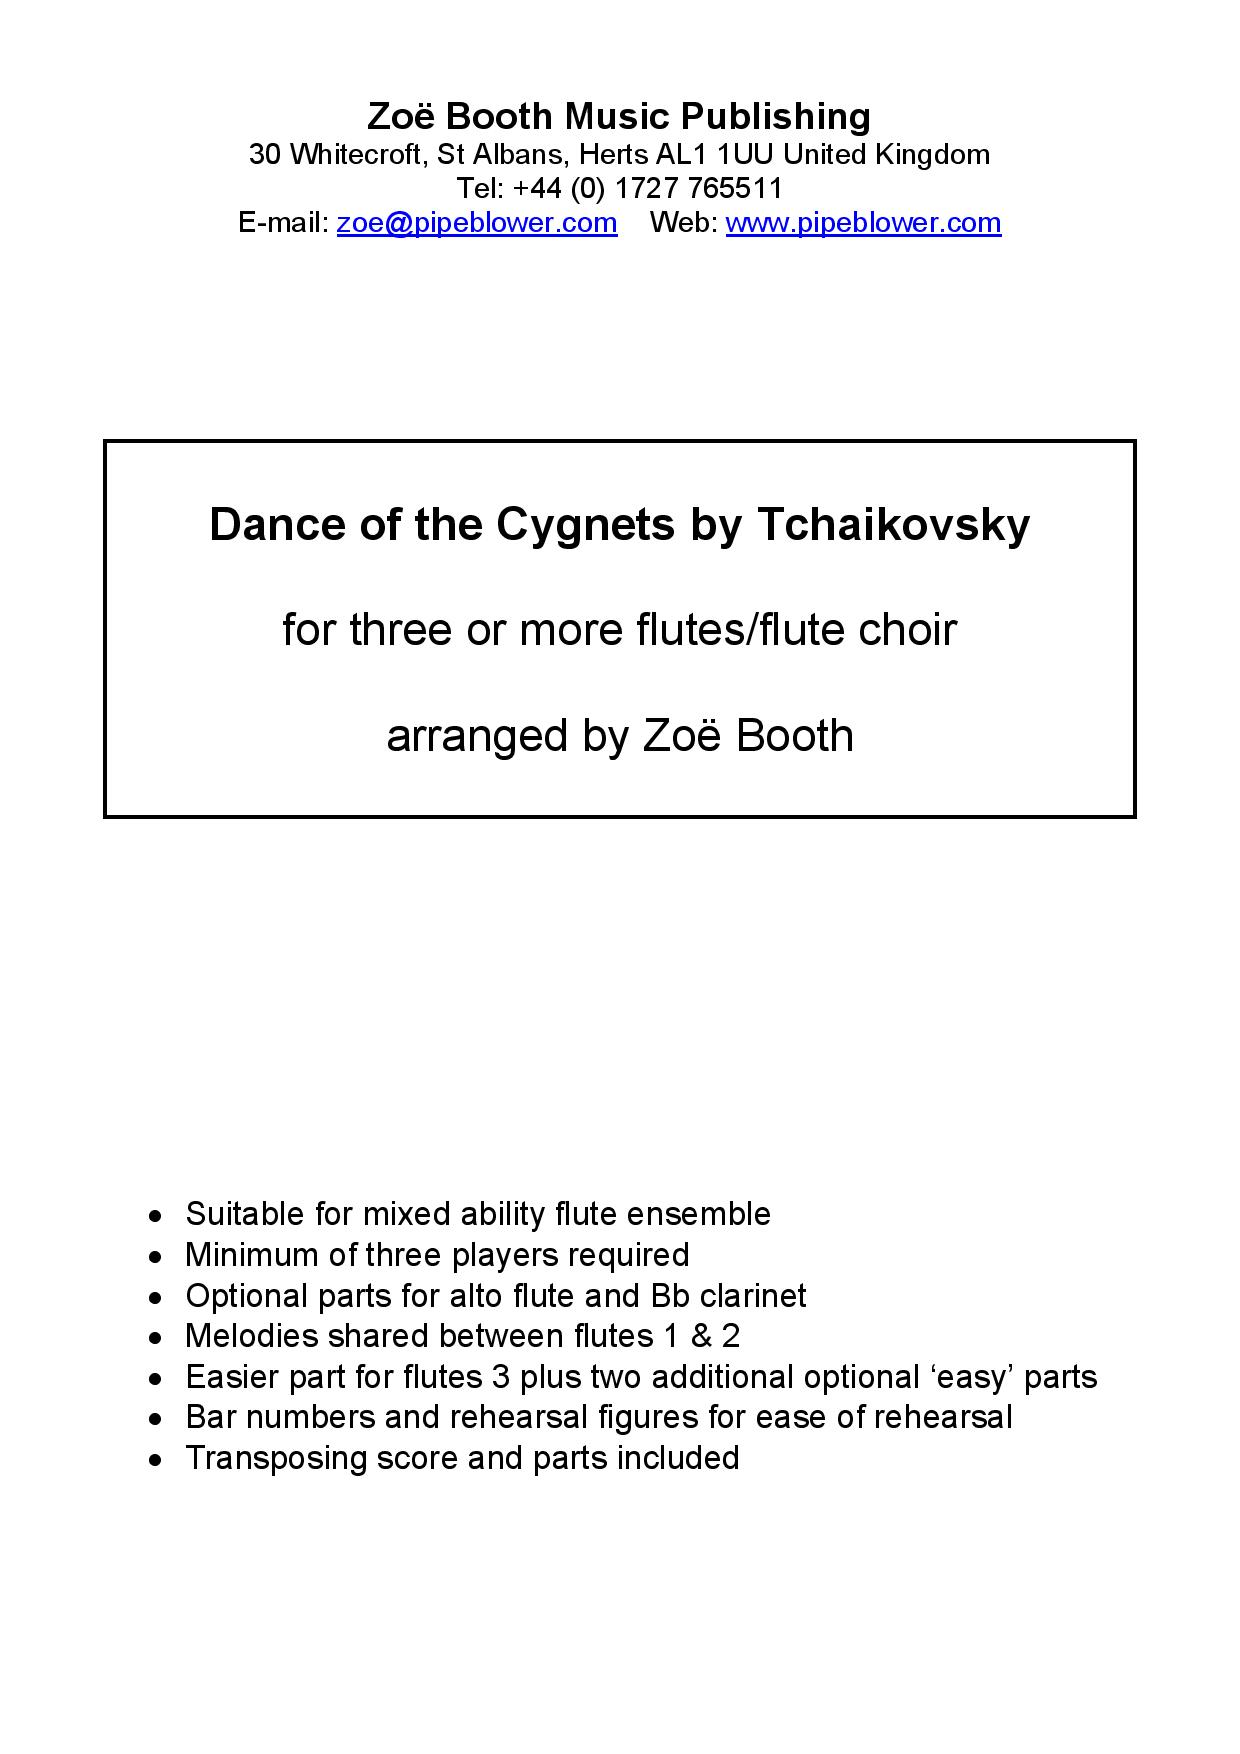 Dance of the Cygnets by Tchaikovsky,  arranged by Zoë Booth or three or more flutes/flute choir